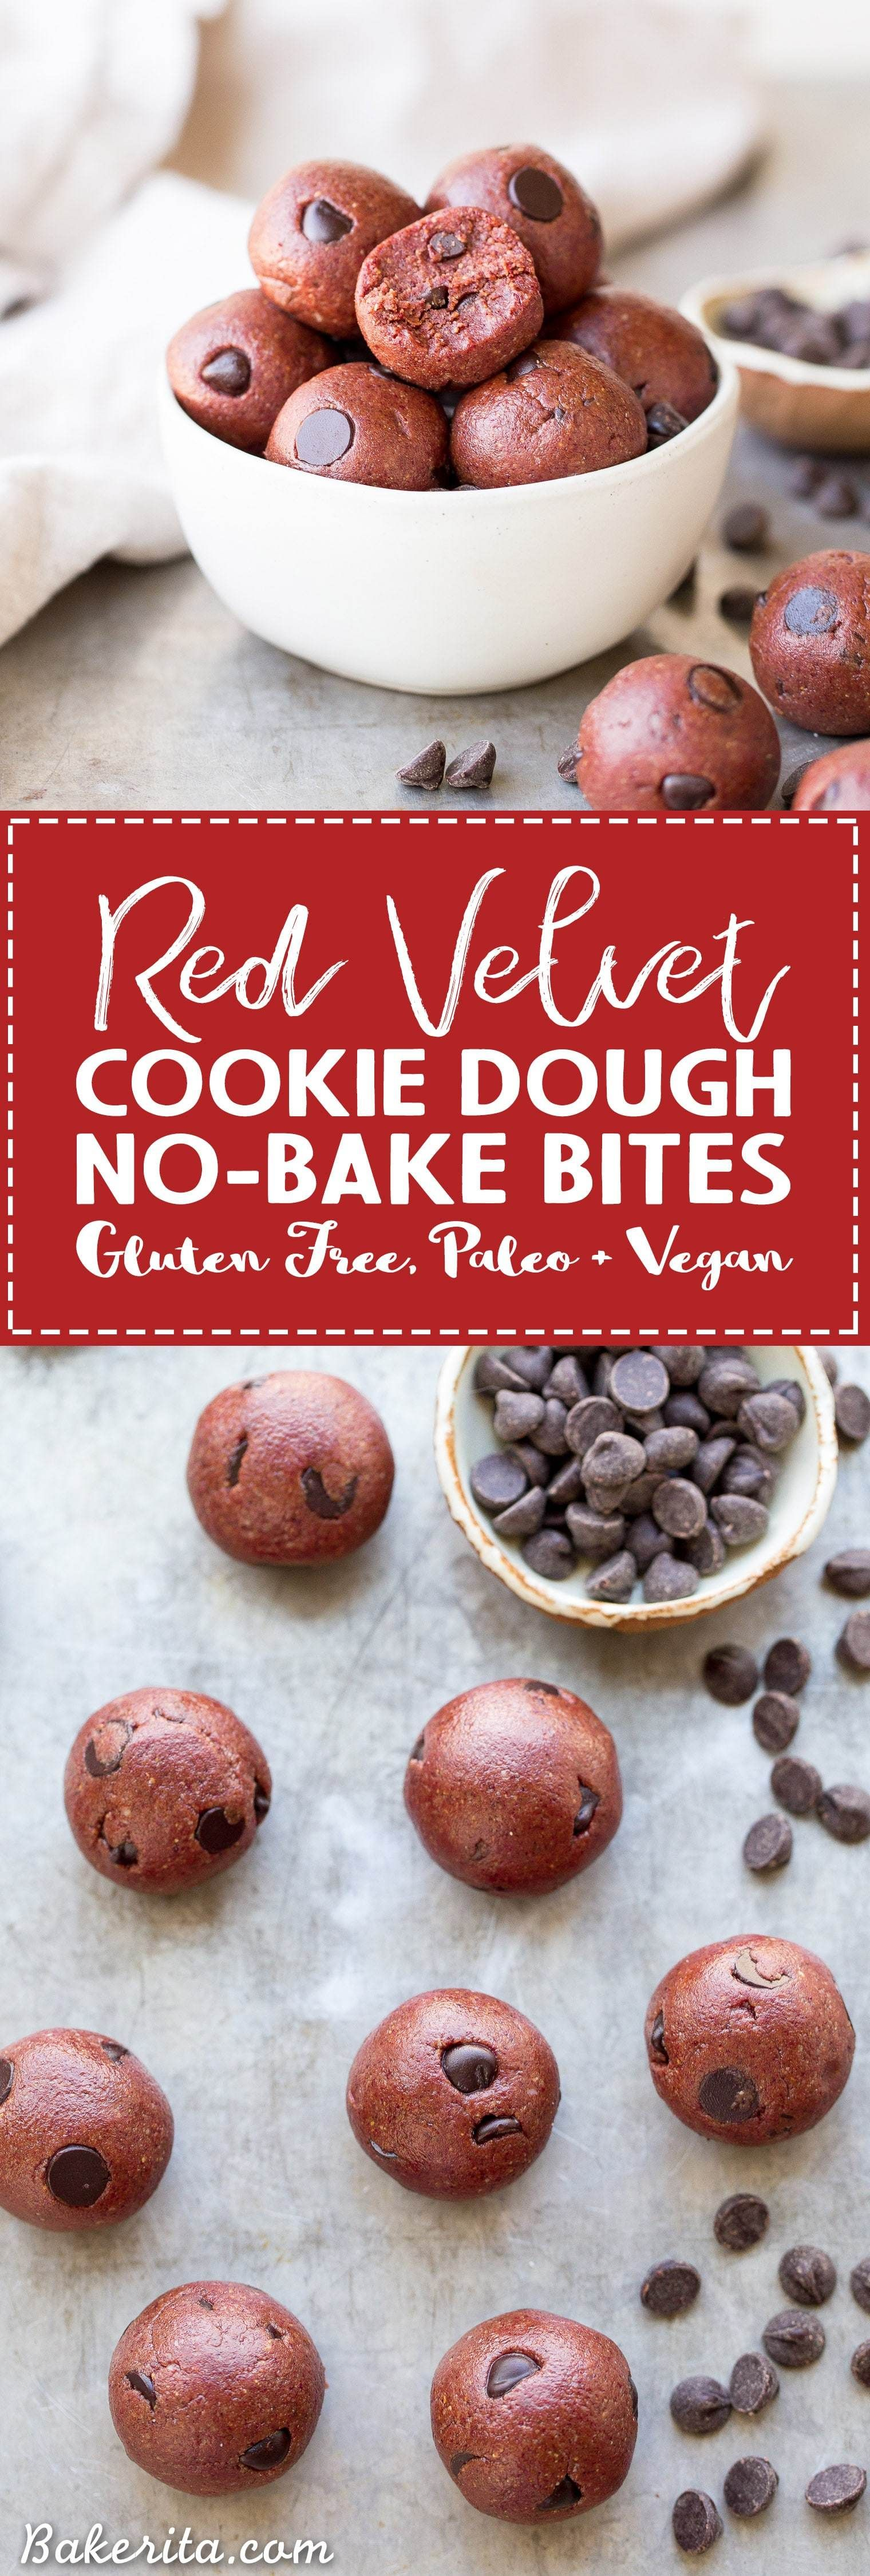 Red Velvet Cookie Dough Bites (Gluten Free, Paleo + Vegan) • Bakerita